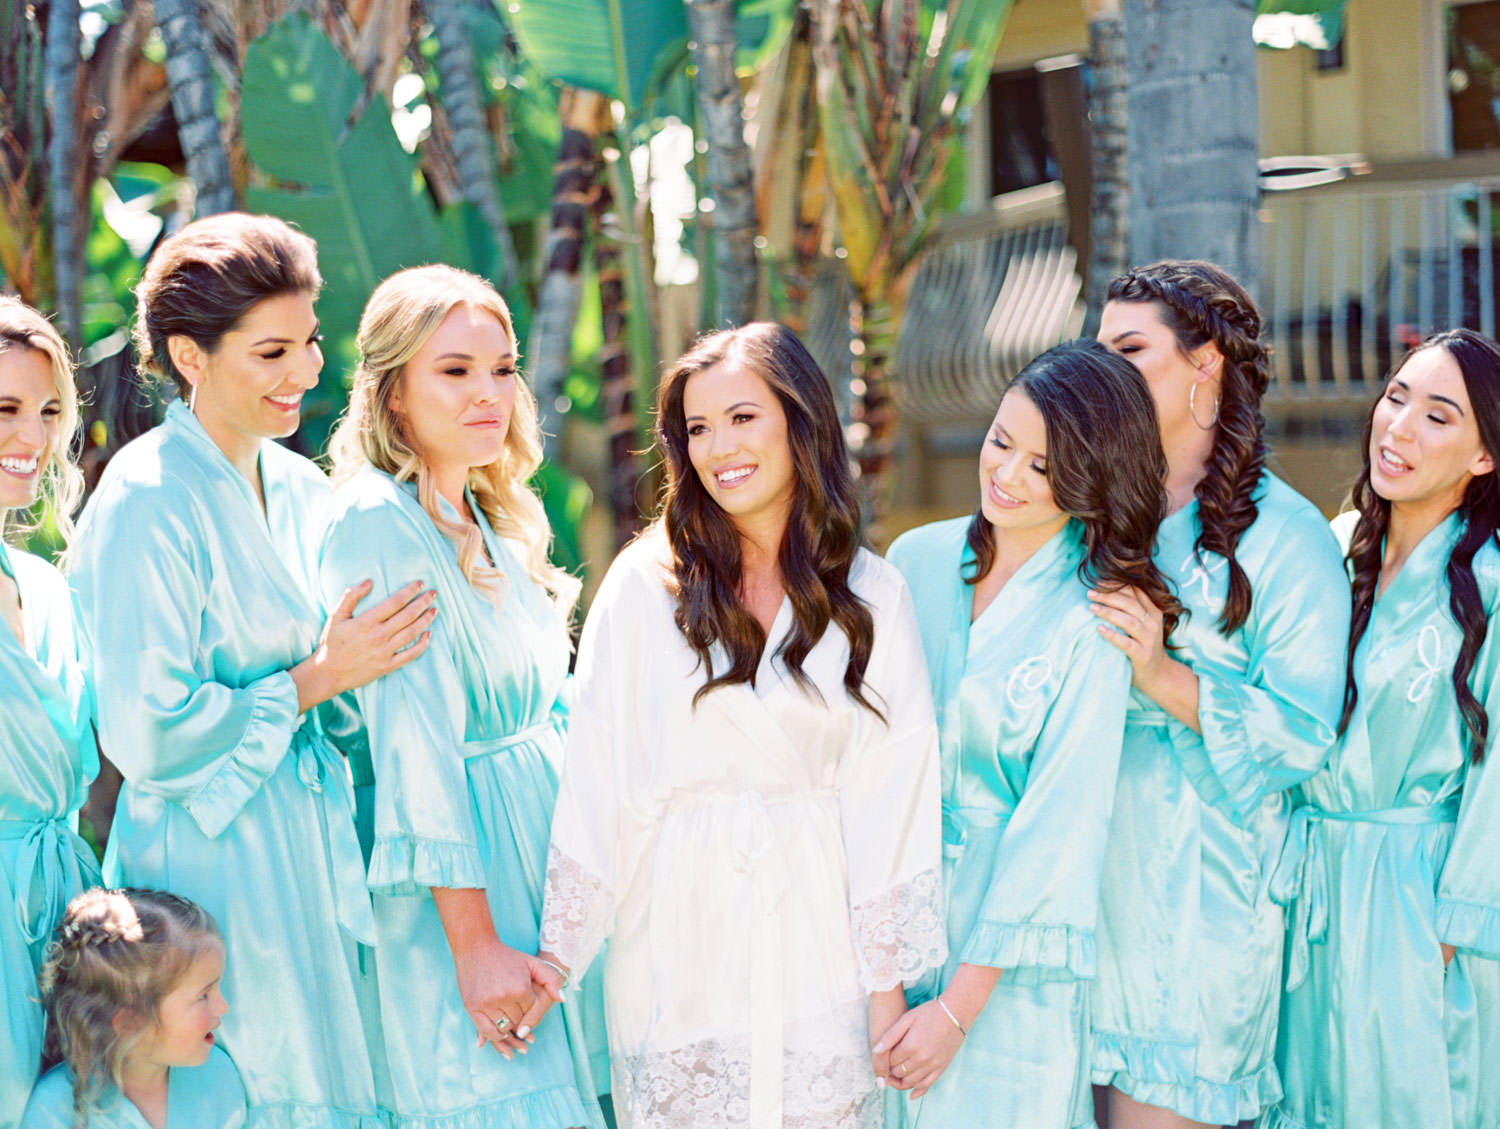 Bridal party with turquoise silk robes and bride in white robe outside in front of palm trees on film, Wedding at Humphreys Half Moon Inn by Cavin Elizabeth Photography